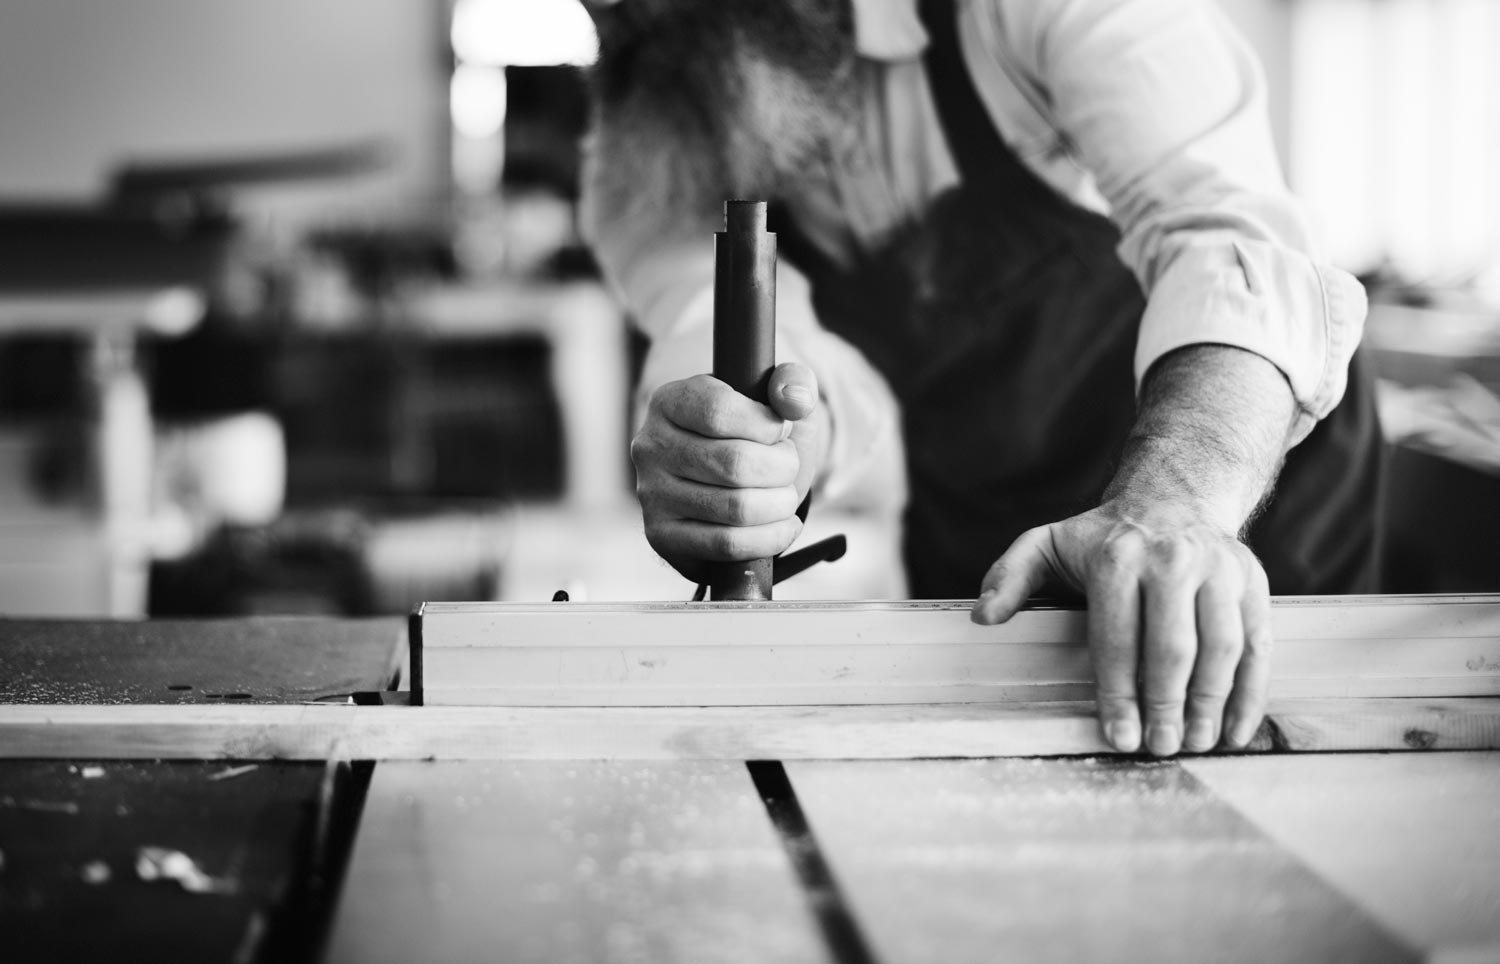 We use the most reliable and sophisticated tools we can find: our hands. -